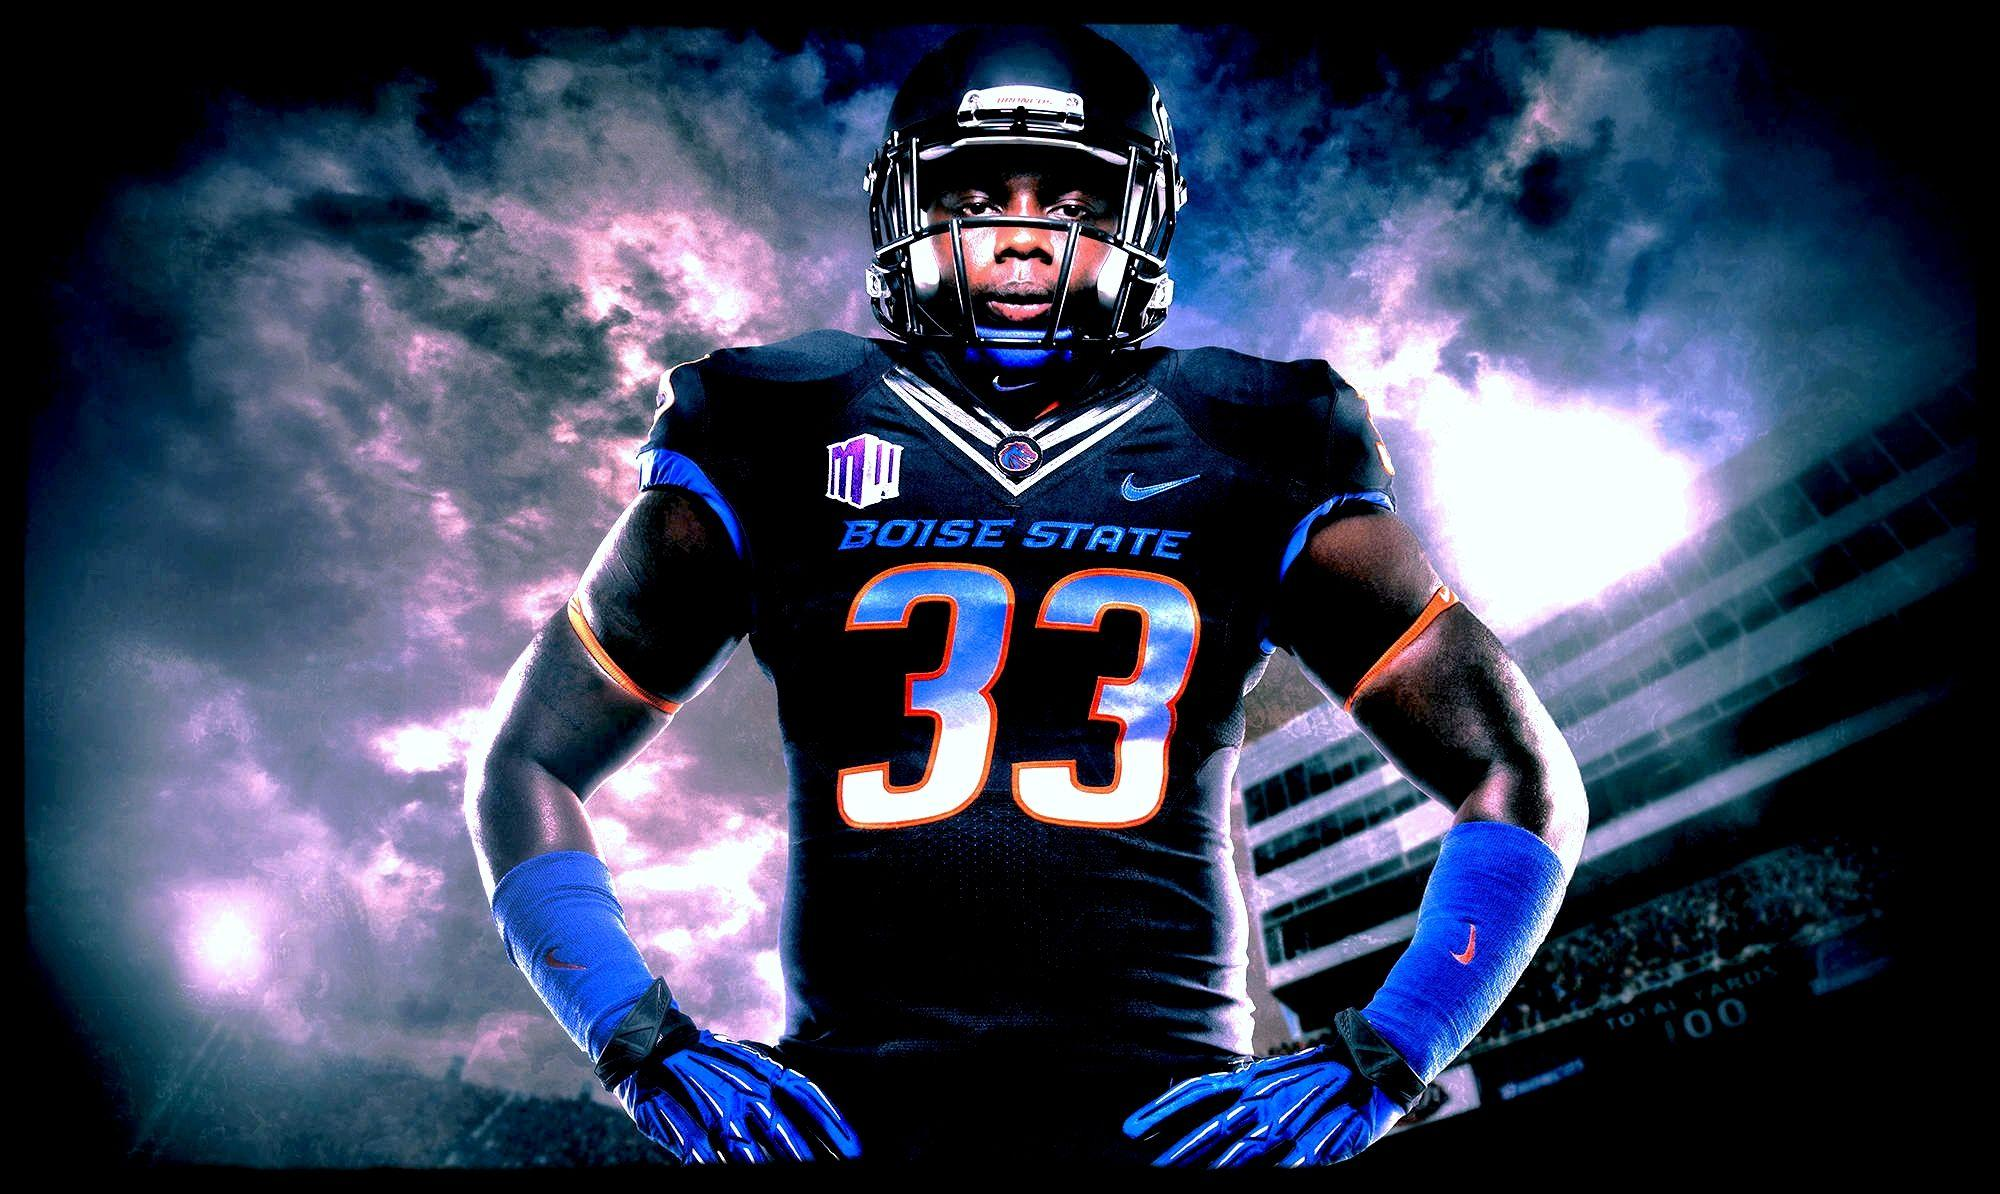 Boise State Broncos Football Wallpapers: Boise State University Wallpapers